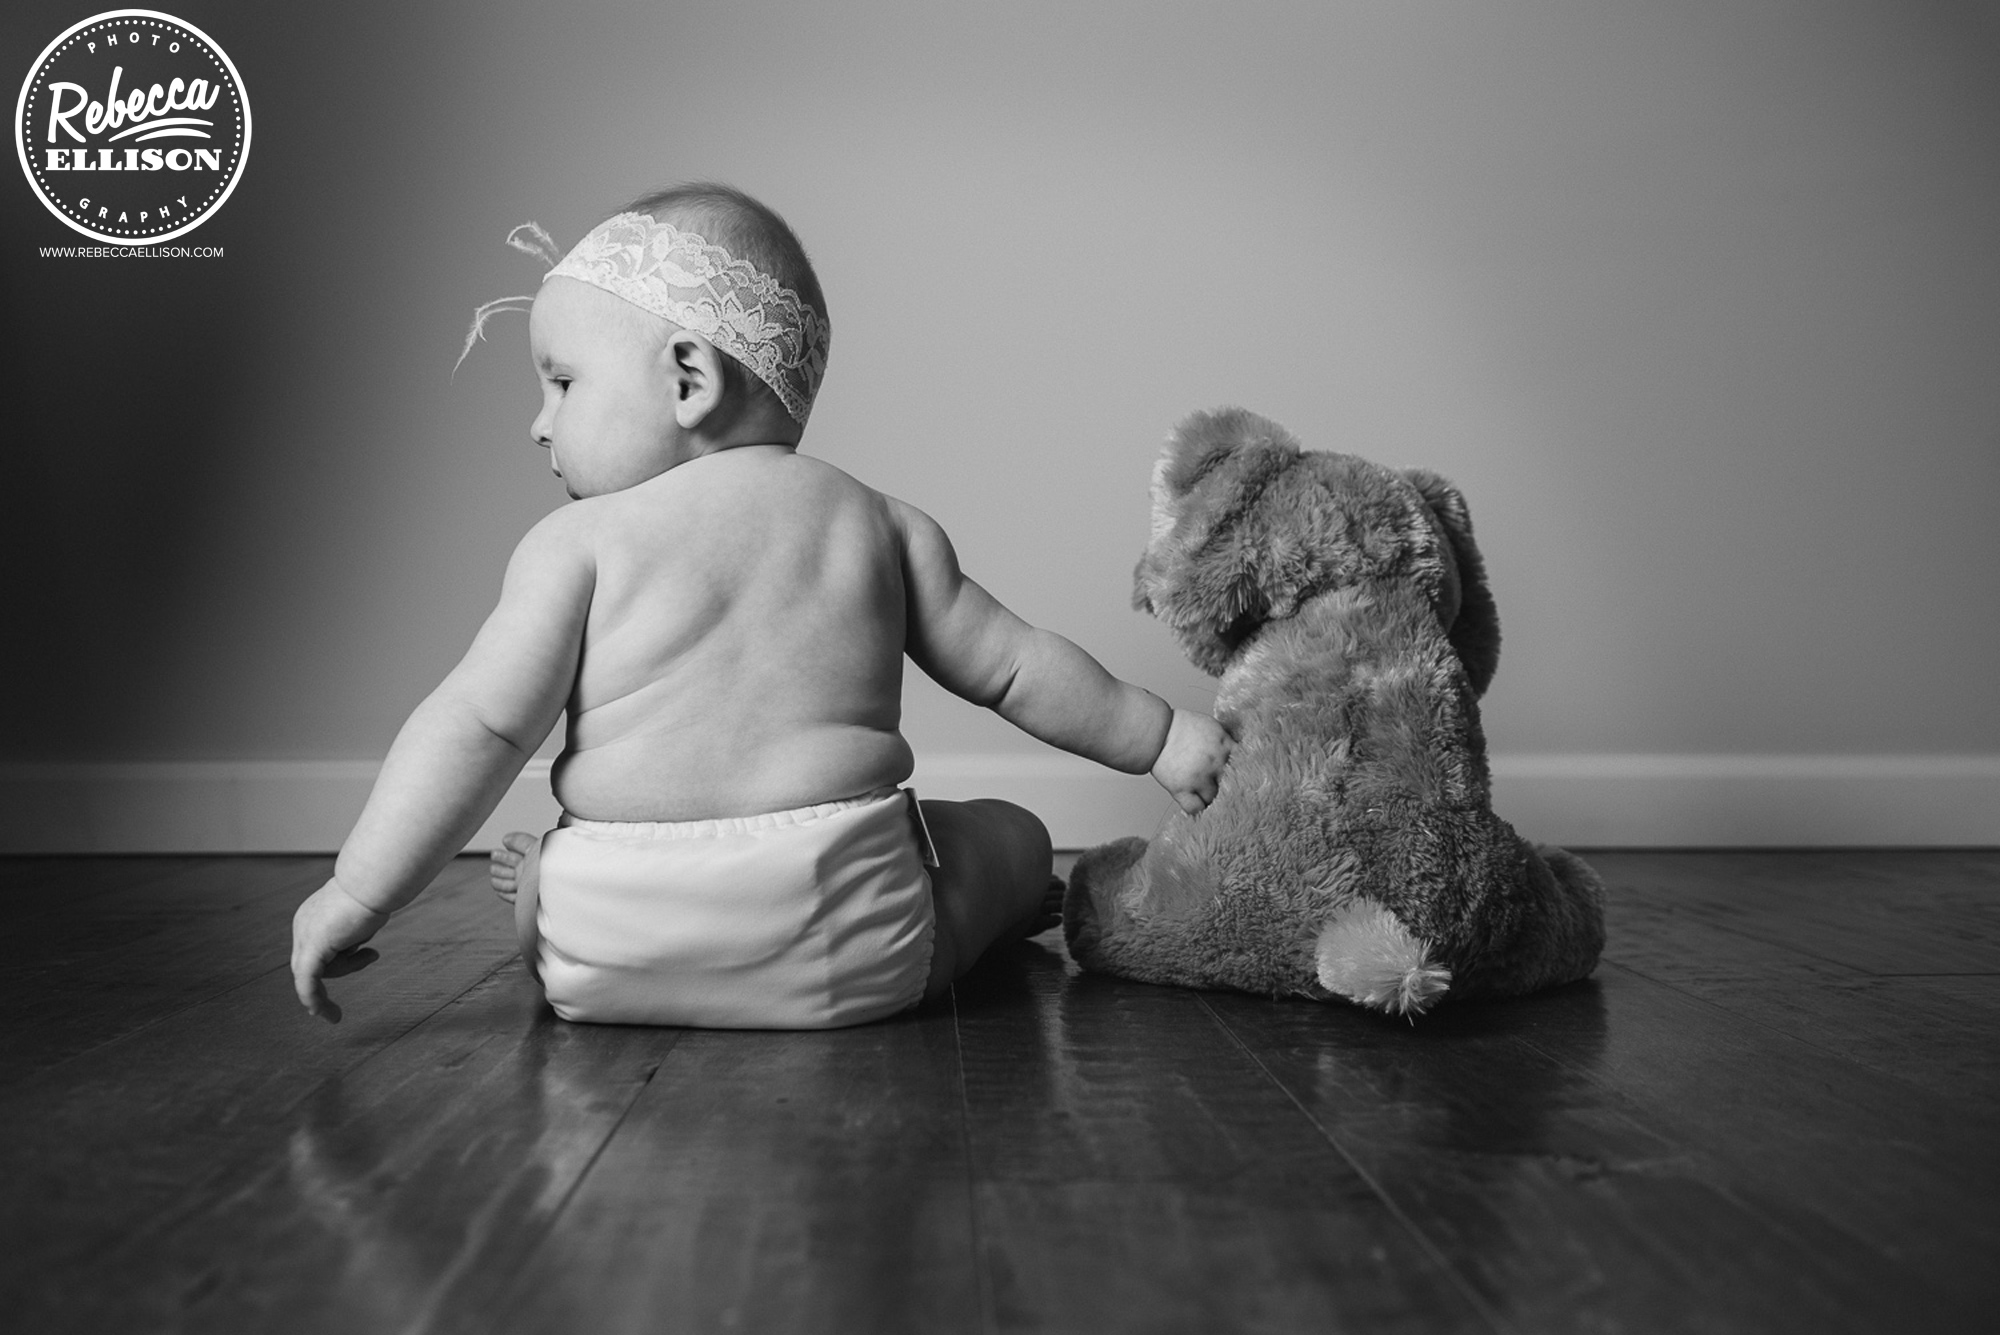 Baby and teddy bear at a lifestyle photography session photographed by bellevue baby photographer Rebecca Ellison